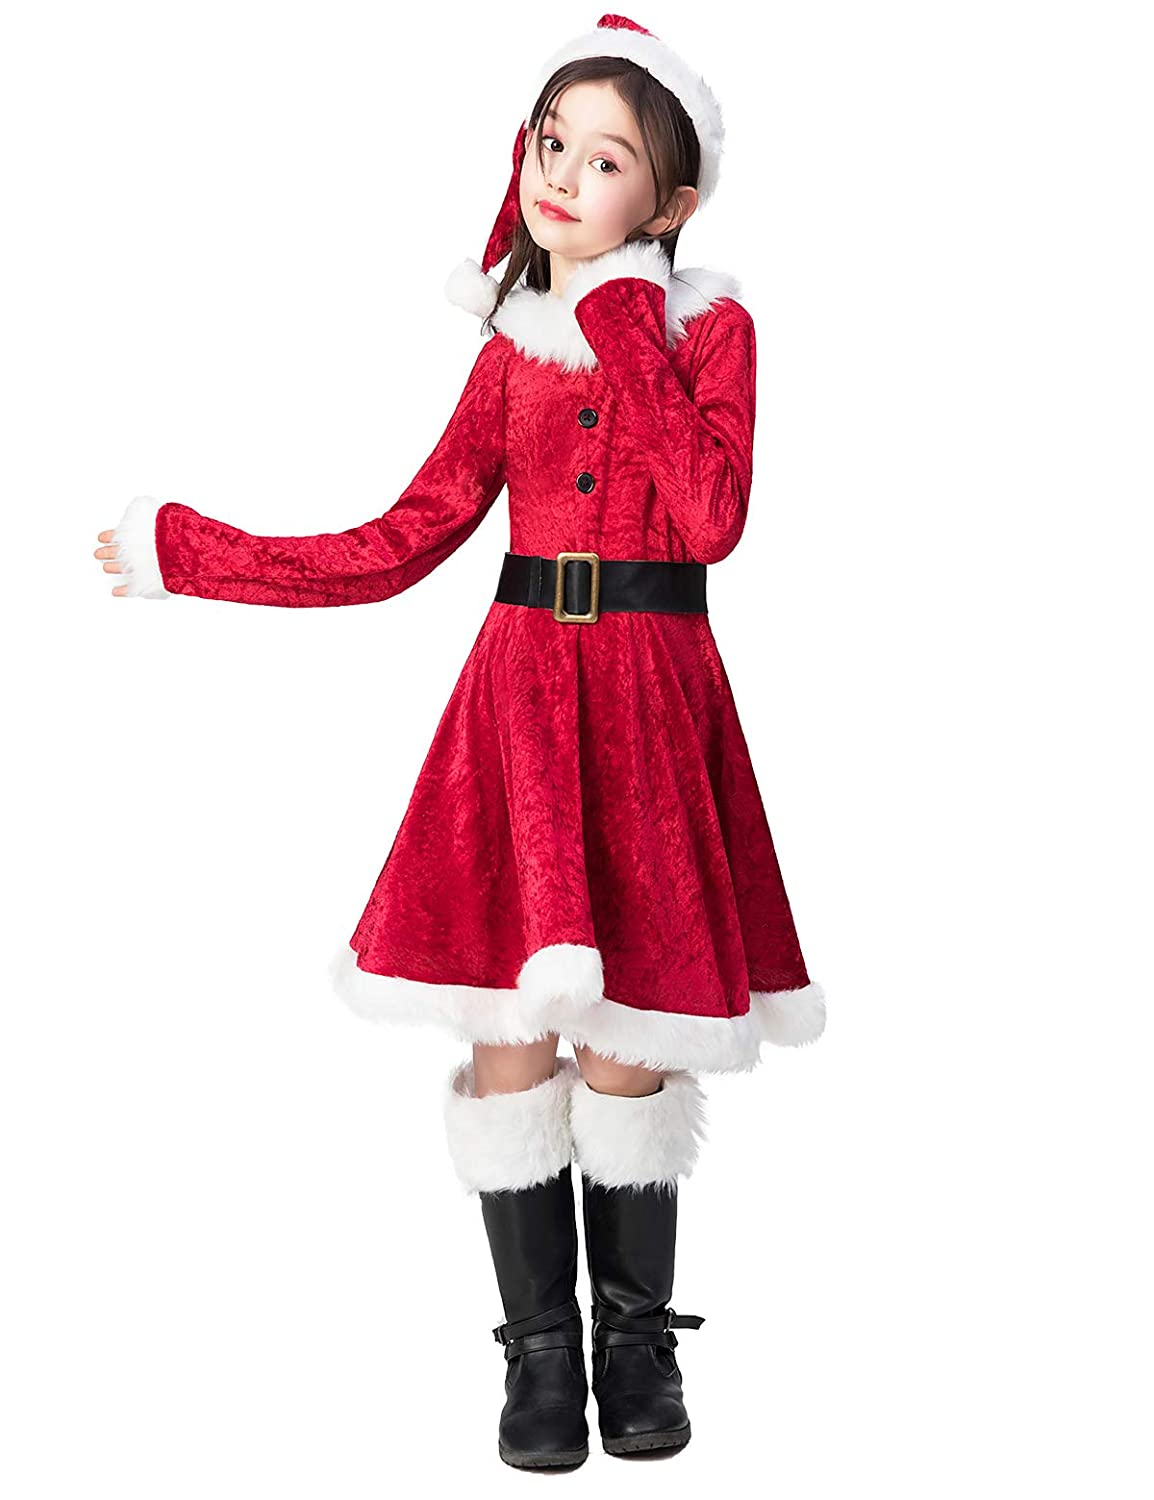 Takuvan Little Mrs Santa Suit Girls Christmas Dress Outfit Kids Halloween Cosplay Costume for Party